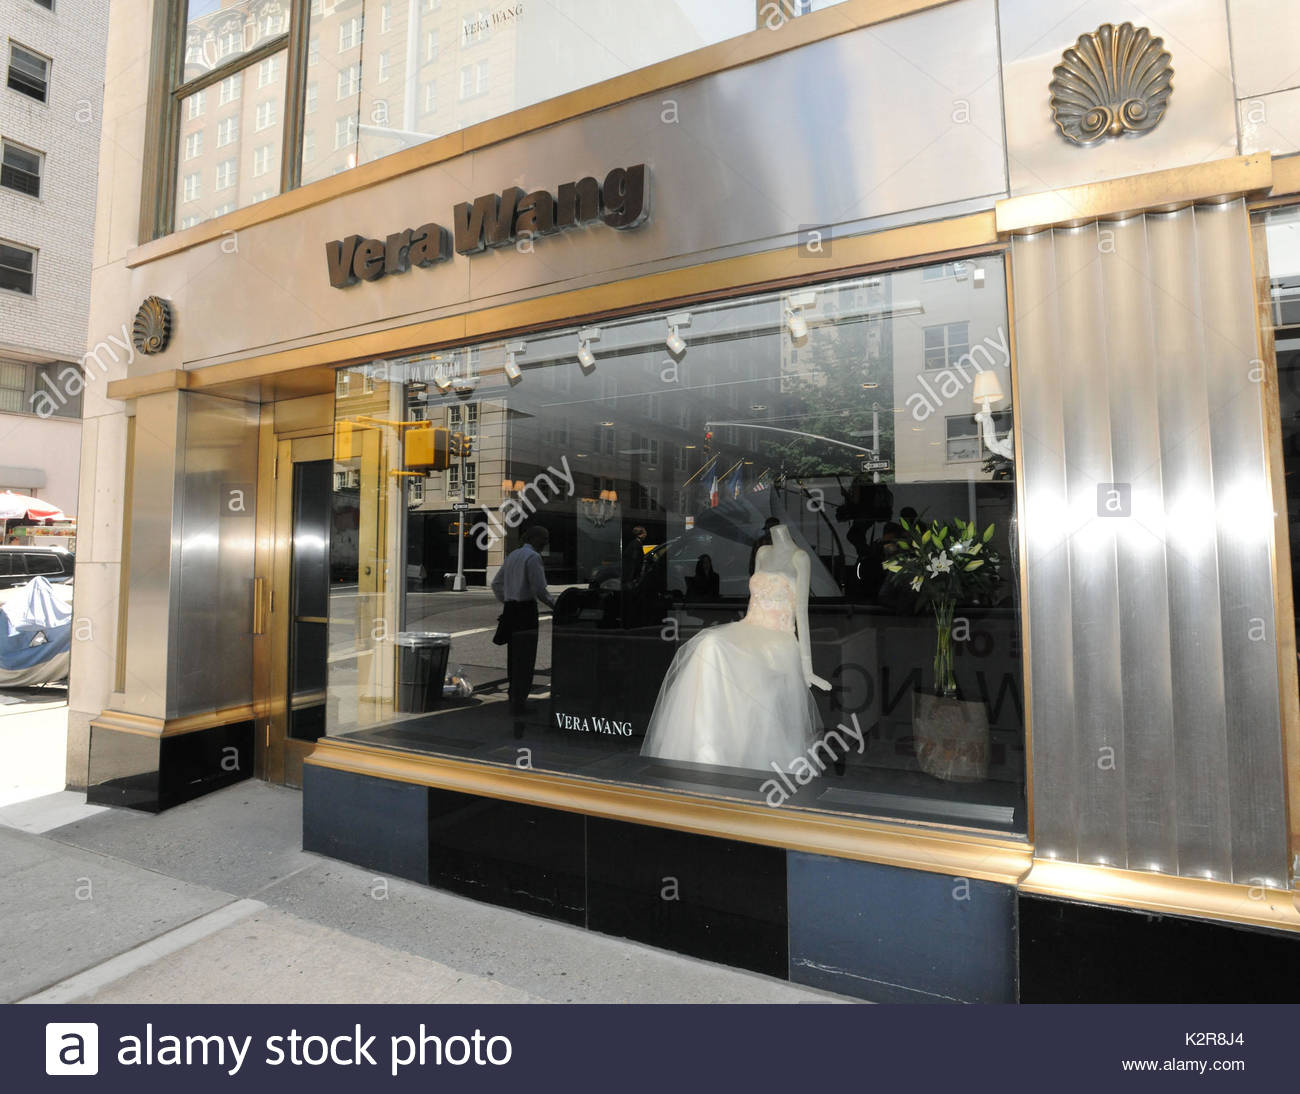 Vera wang store kim kardashian shops for vera wang for Wedding dress shops in oklahoma city